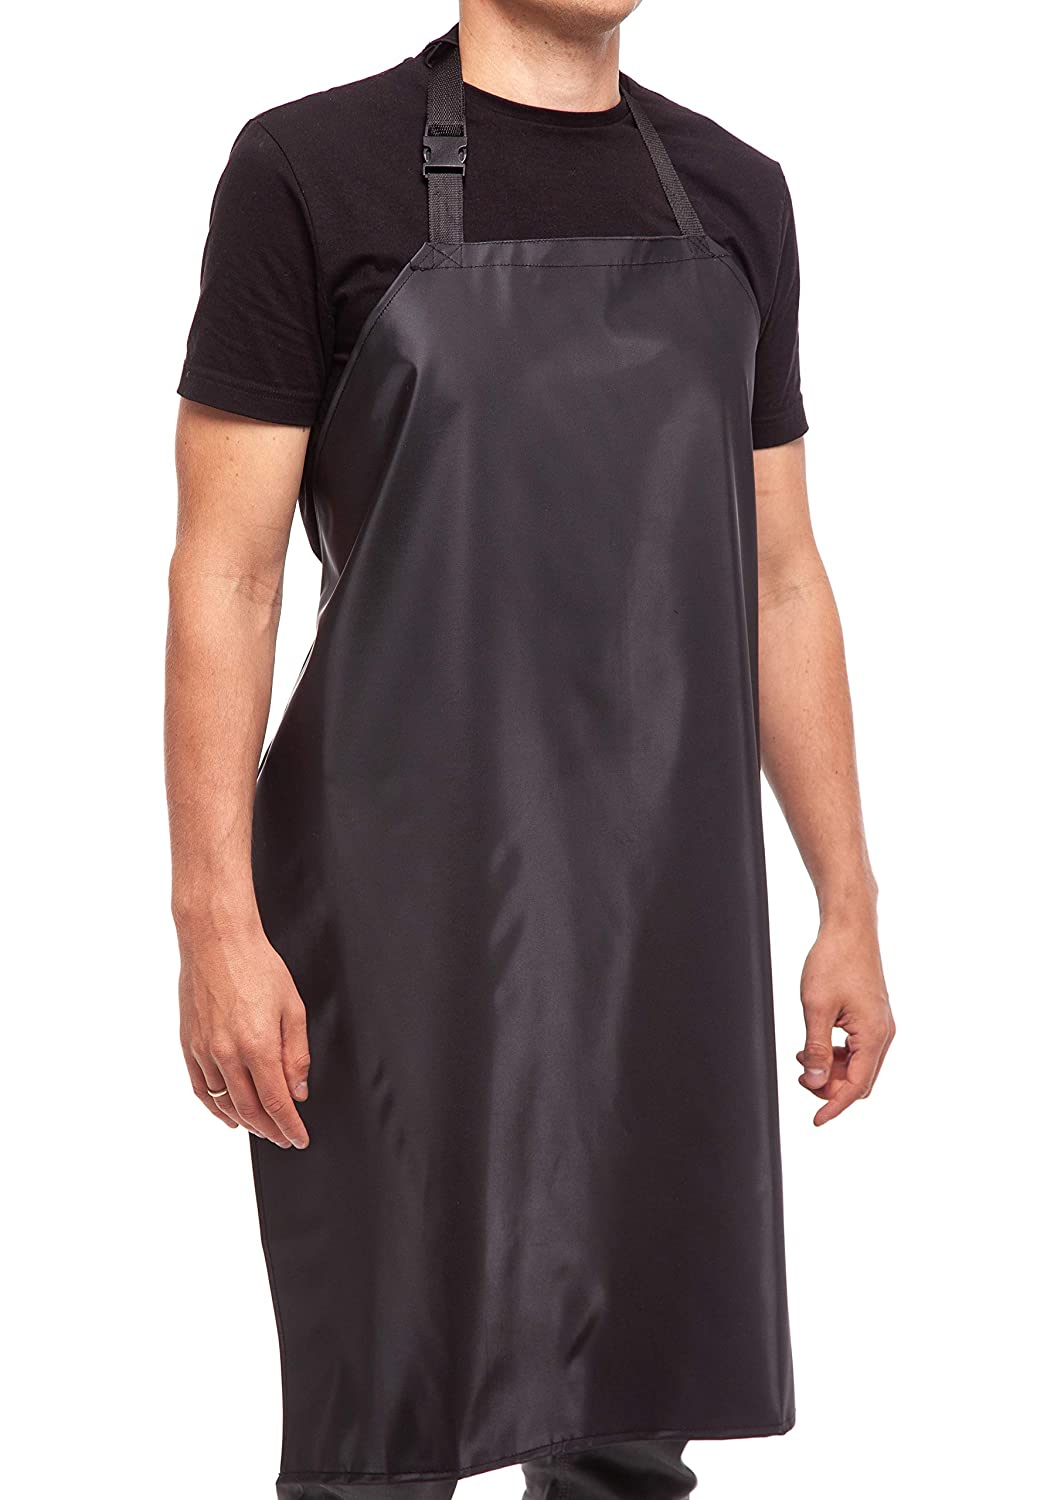 "Waterproof Rubber Vinyl Apron - 35"" Upgraded 2018 Light Model - Best for Staying Dry When Dishwashing, Lab Work, Butcher, Dog Grooming, Cleaning Fish, Projects - Industrial Chemical Resistant Plastic"